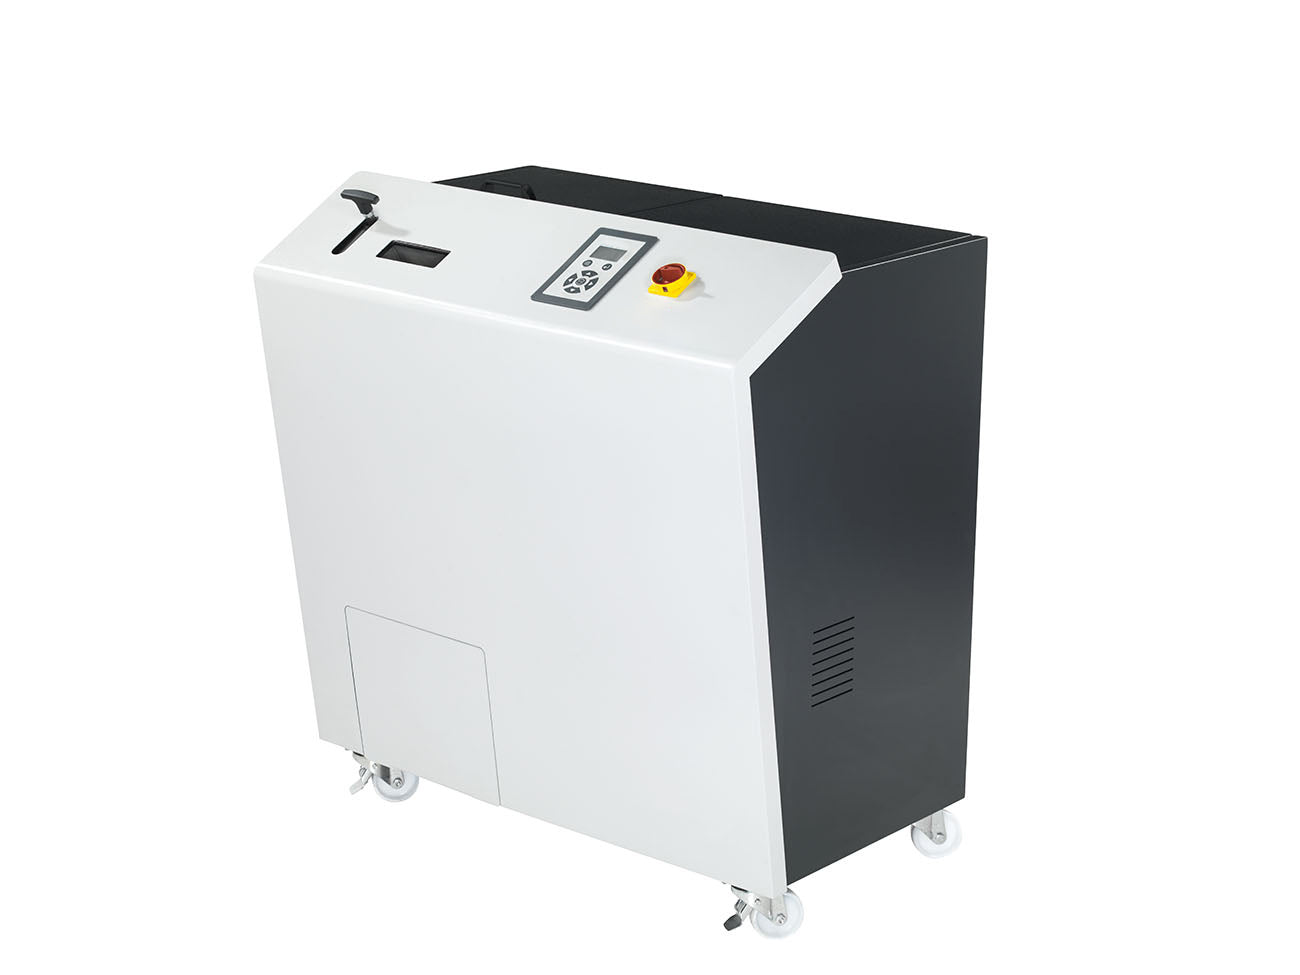 Proton 104 LTO, Hard Drive Multi-Media Shredder